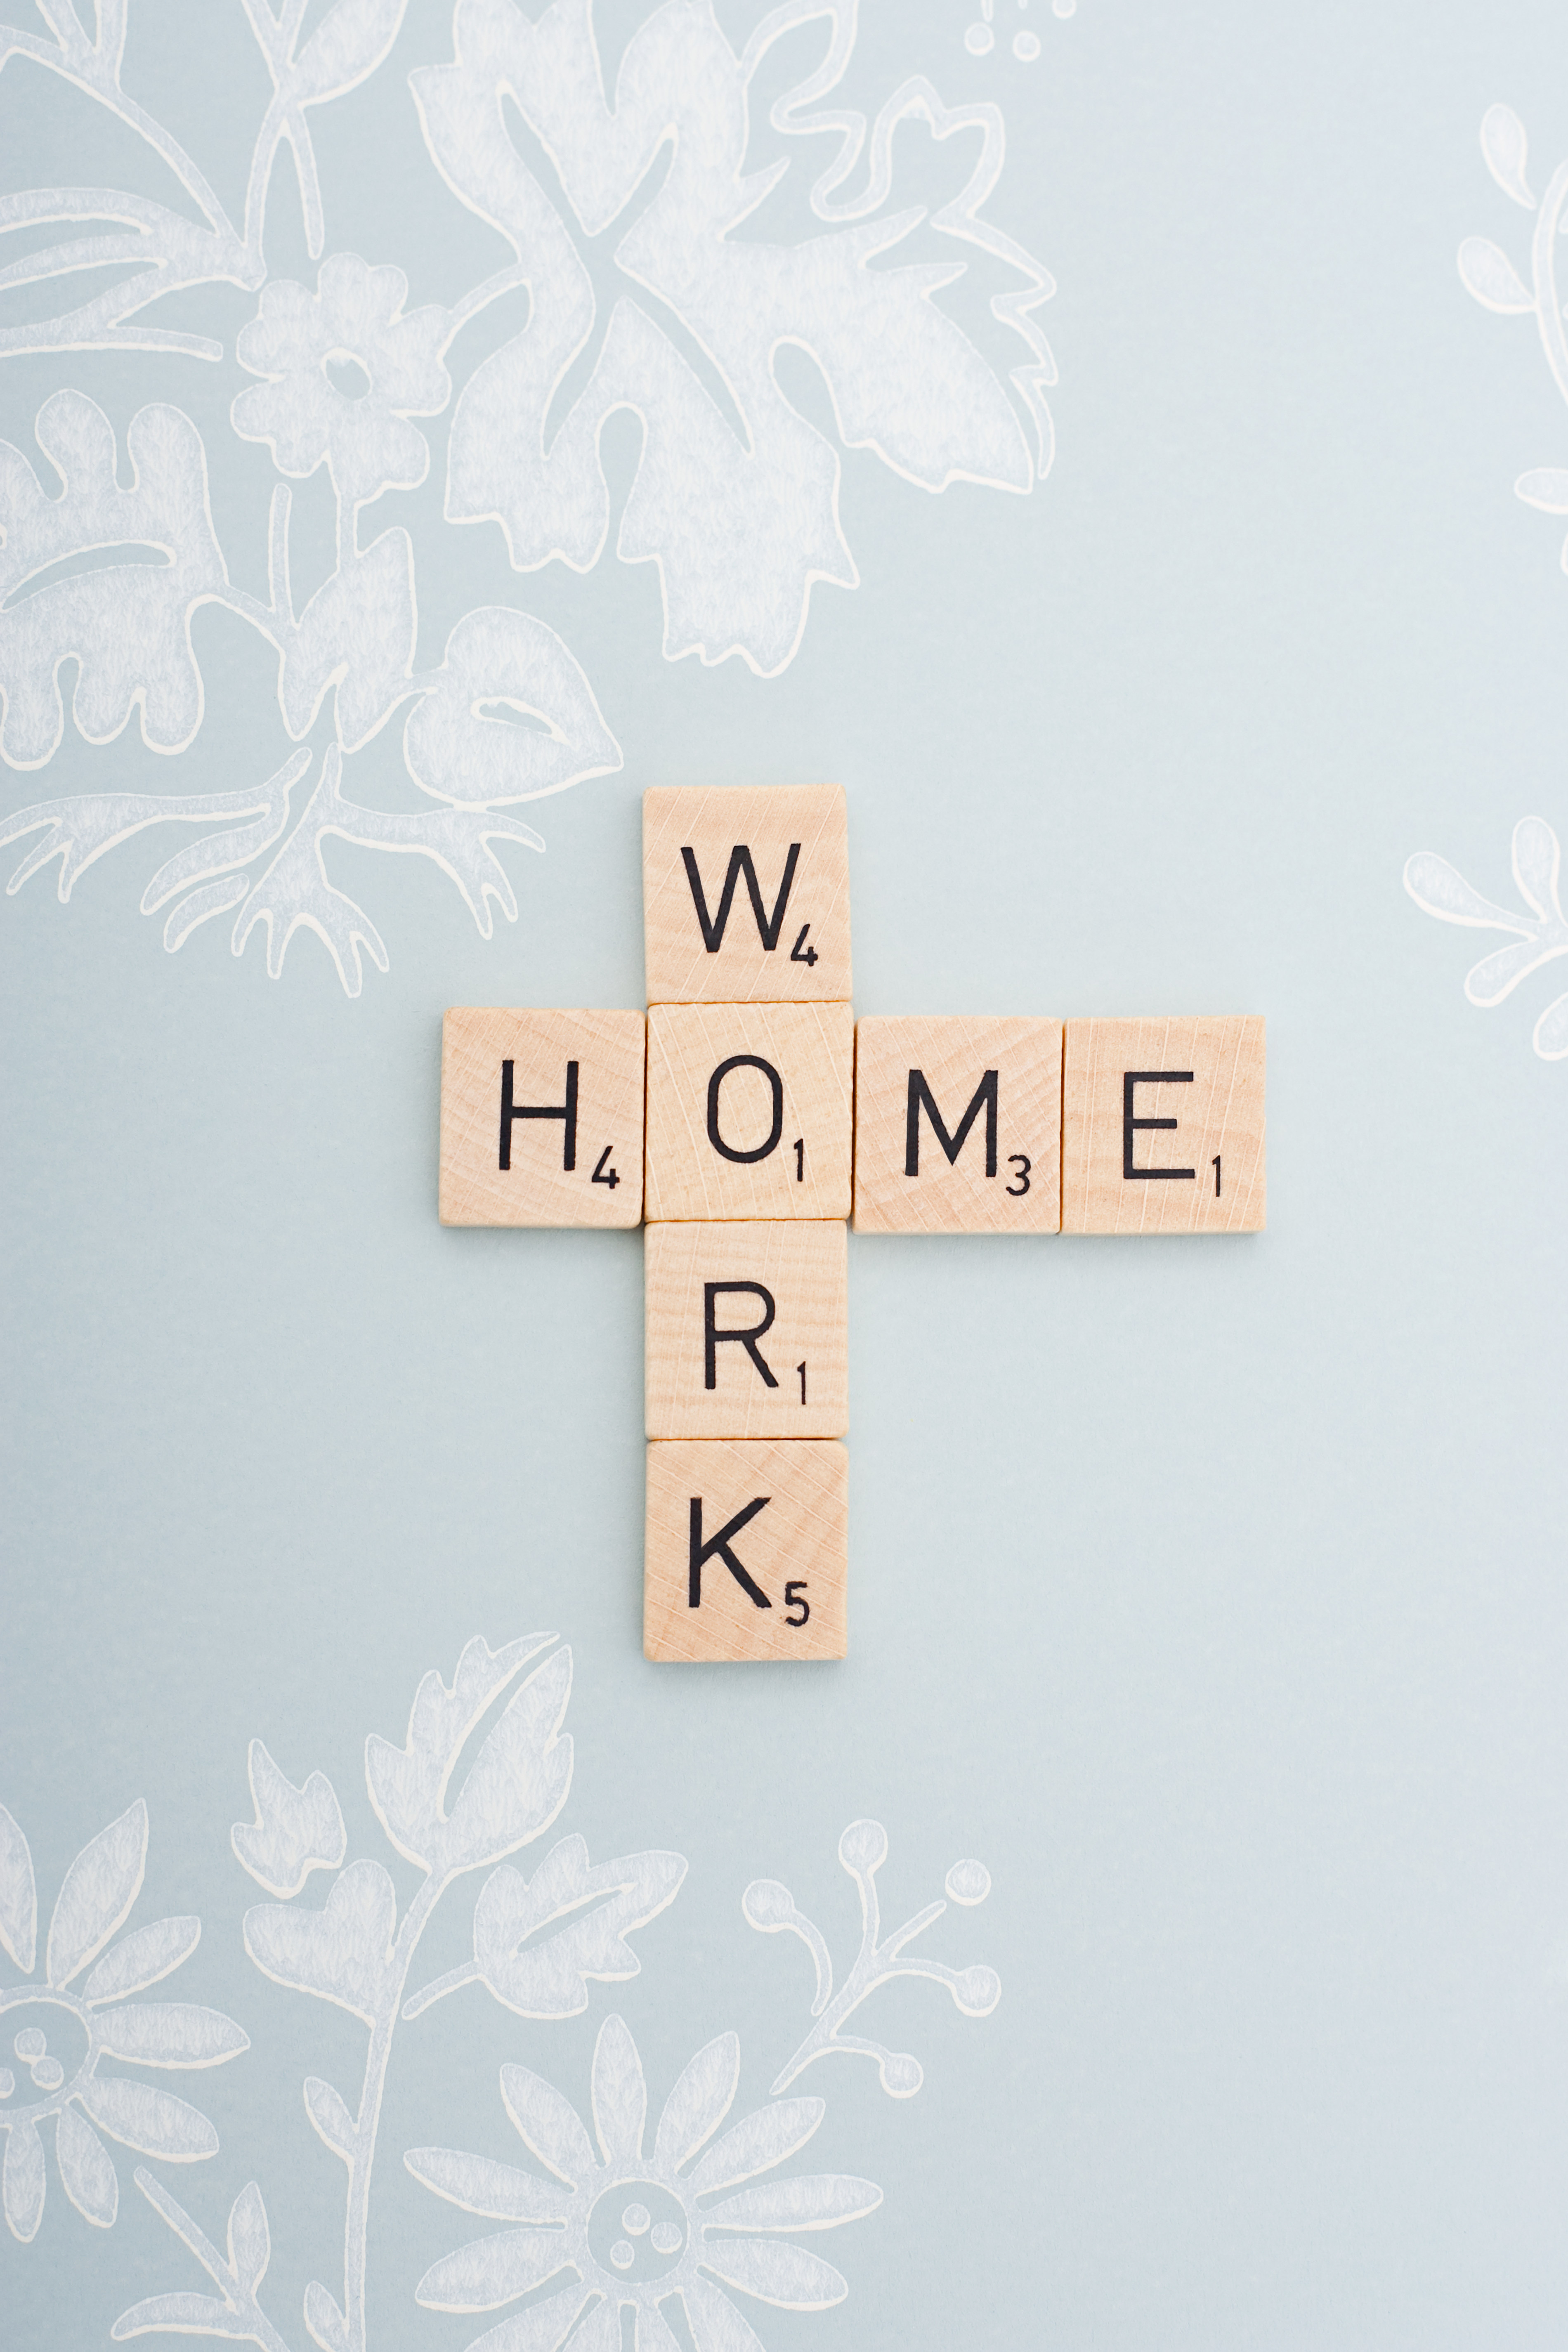 Game tiles spelling work and home